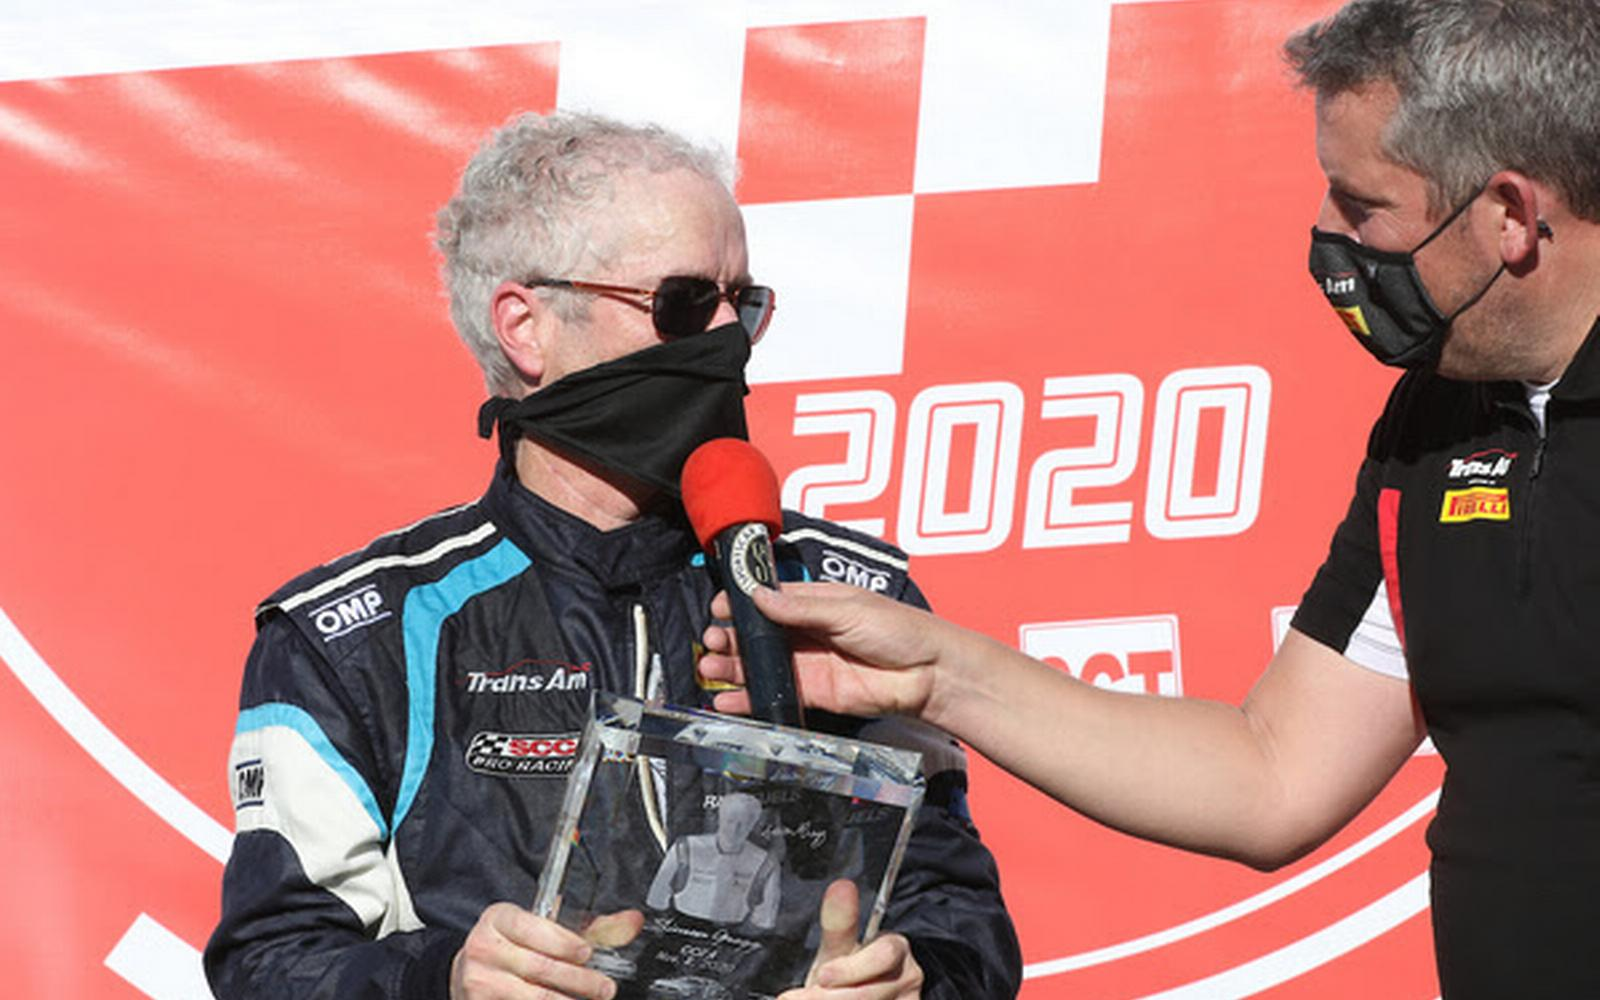 Trans Am Champion Gregg Honored at COTA With Landmark 200 Race Starts